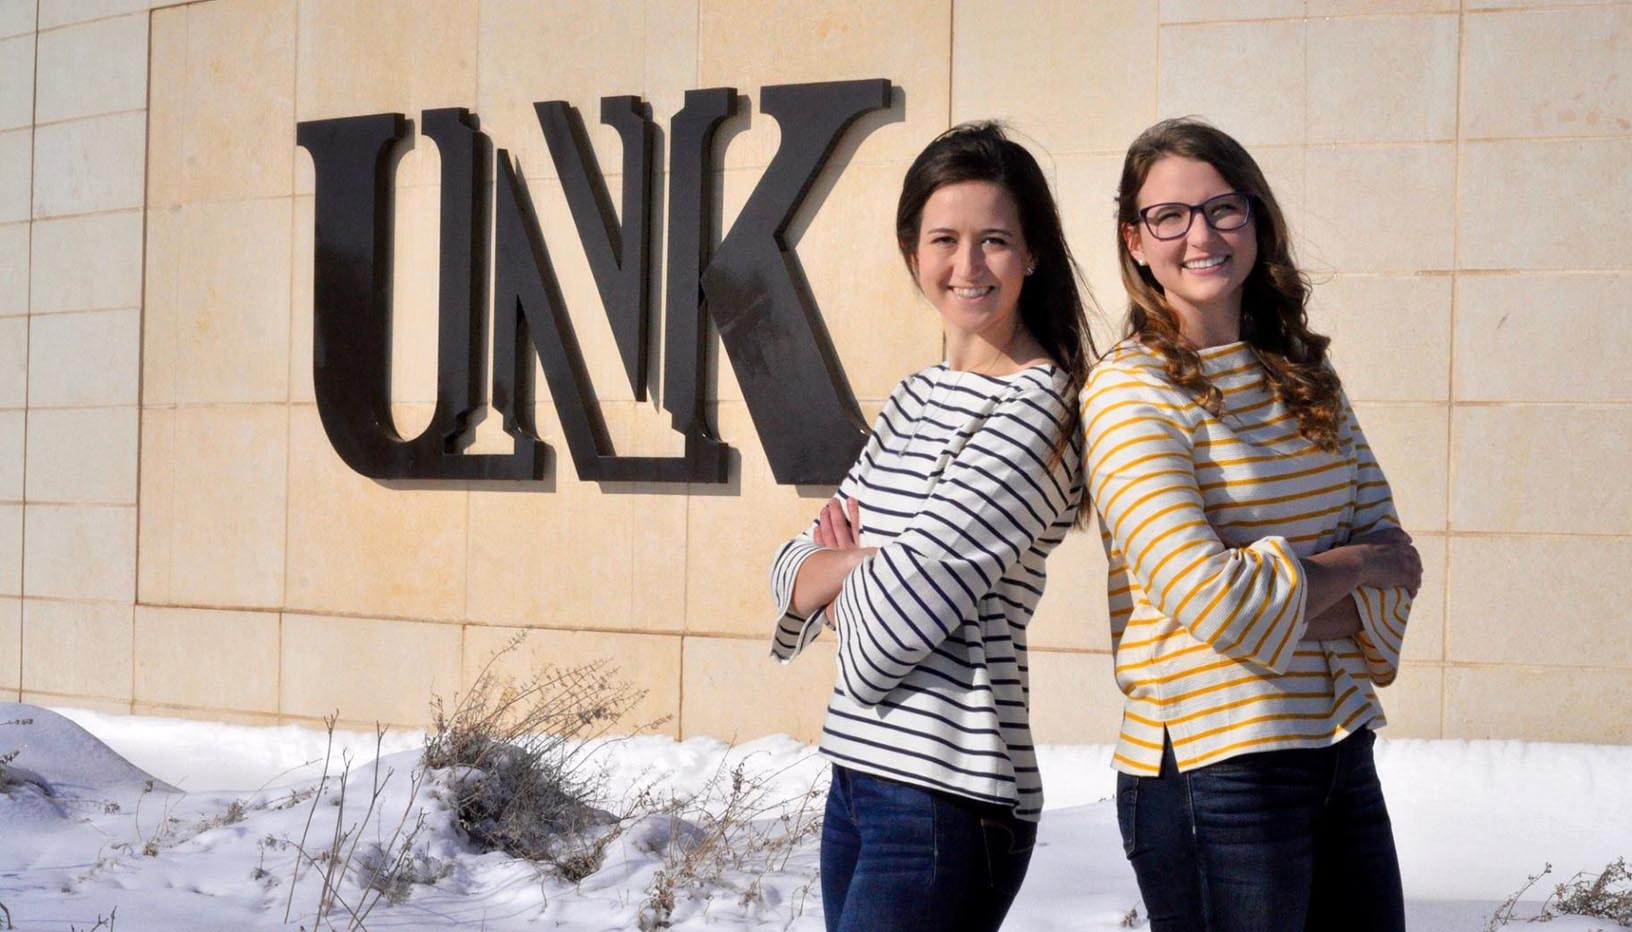 Nicole Kent, left, and Katie Schultis will take over as UNK's student body president and vice president following their March 26 inauguration. (Courtesy photo)